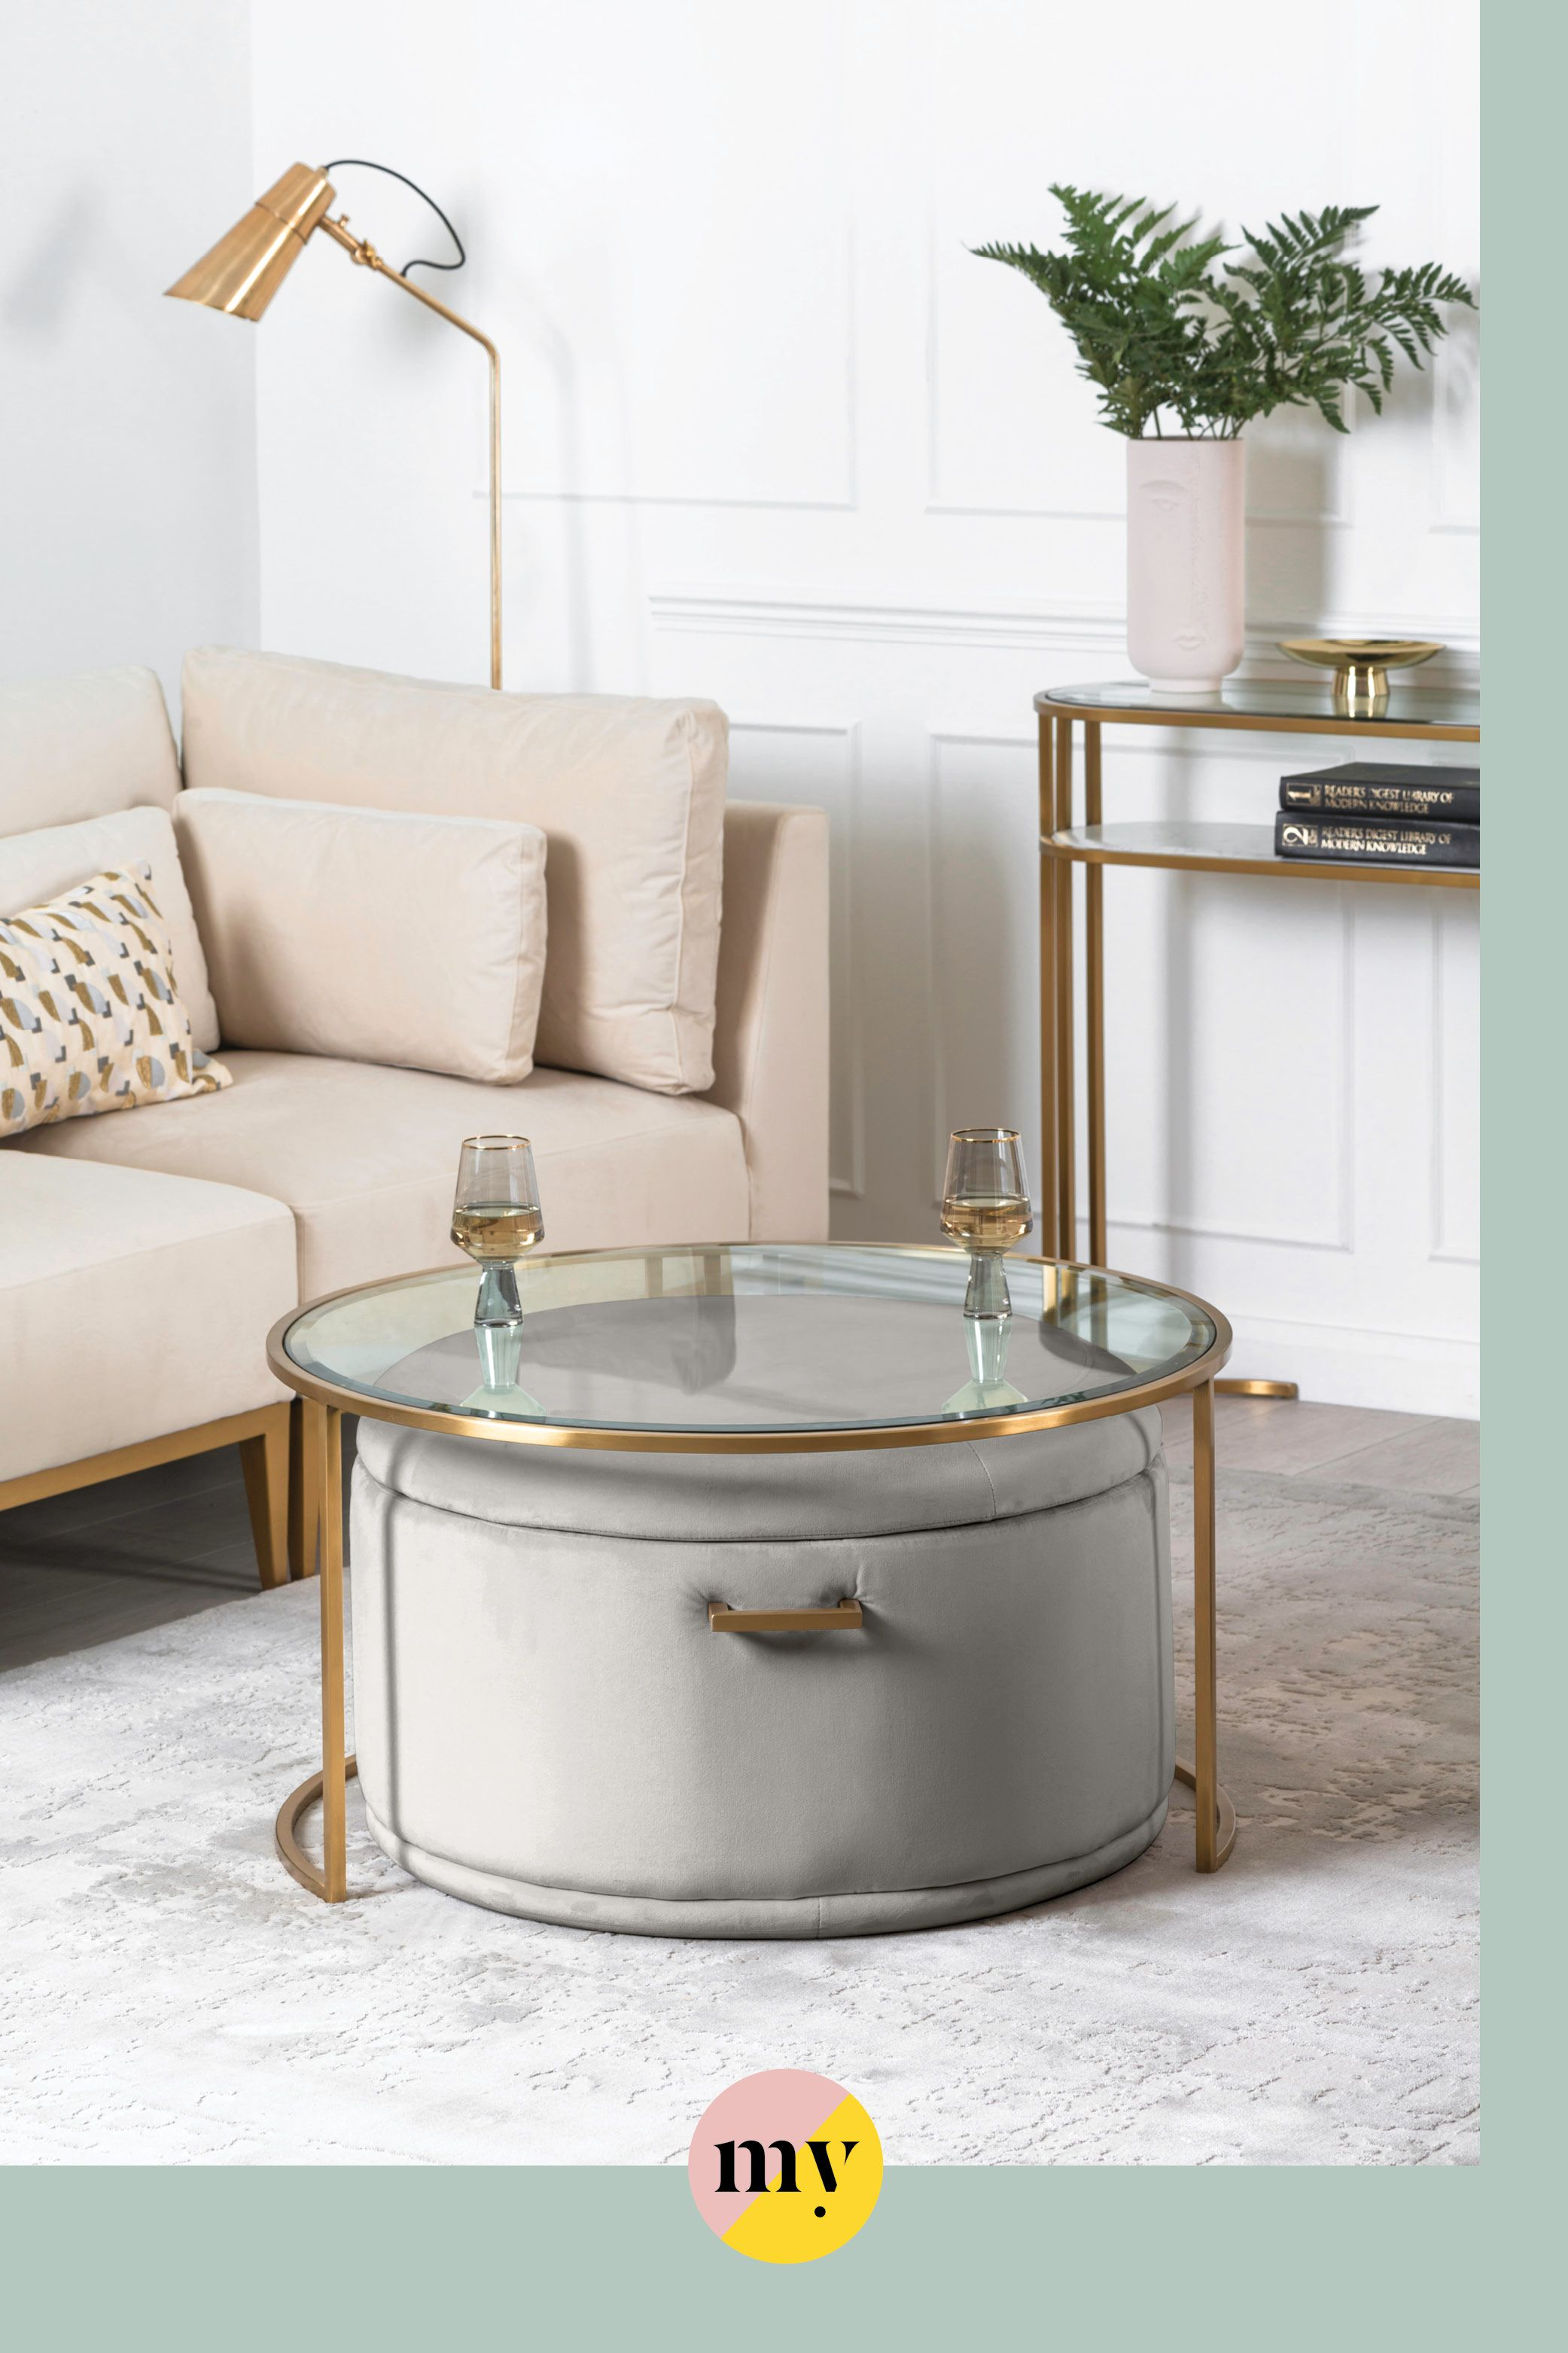 Aria Coffee Table And Storage Ottoman Dove Grey In 2021 Storage Ottoman Coffee Table Storage Ottoman Coffee Table [ 3125 x 2083 Pixel ]